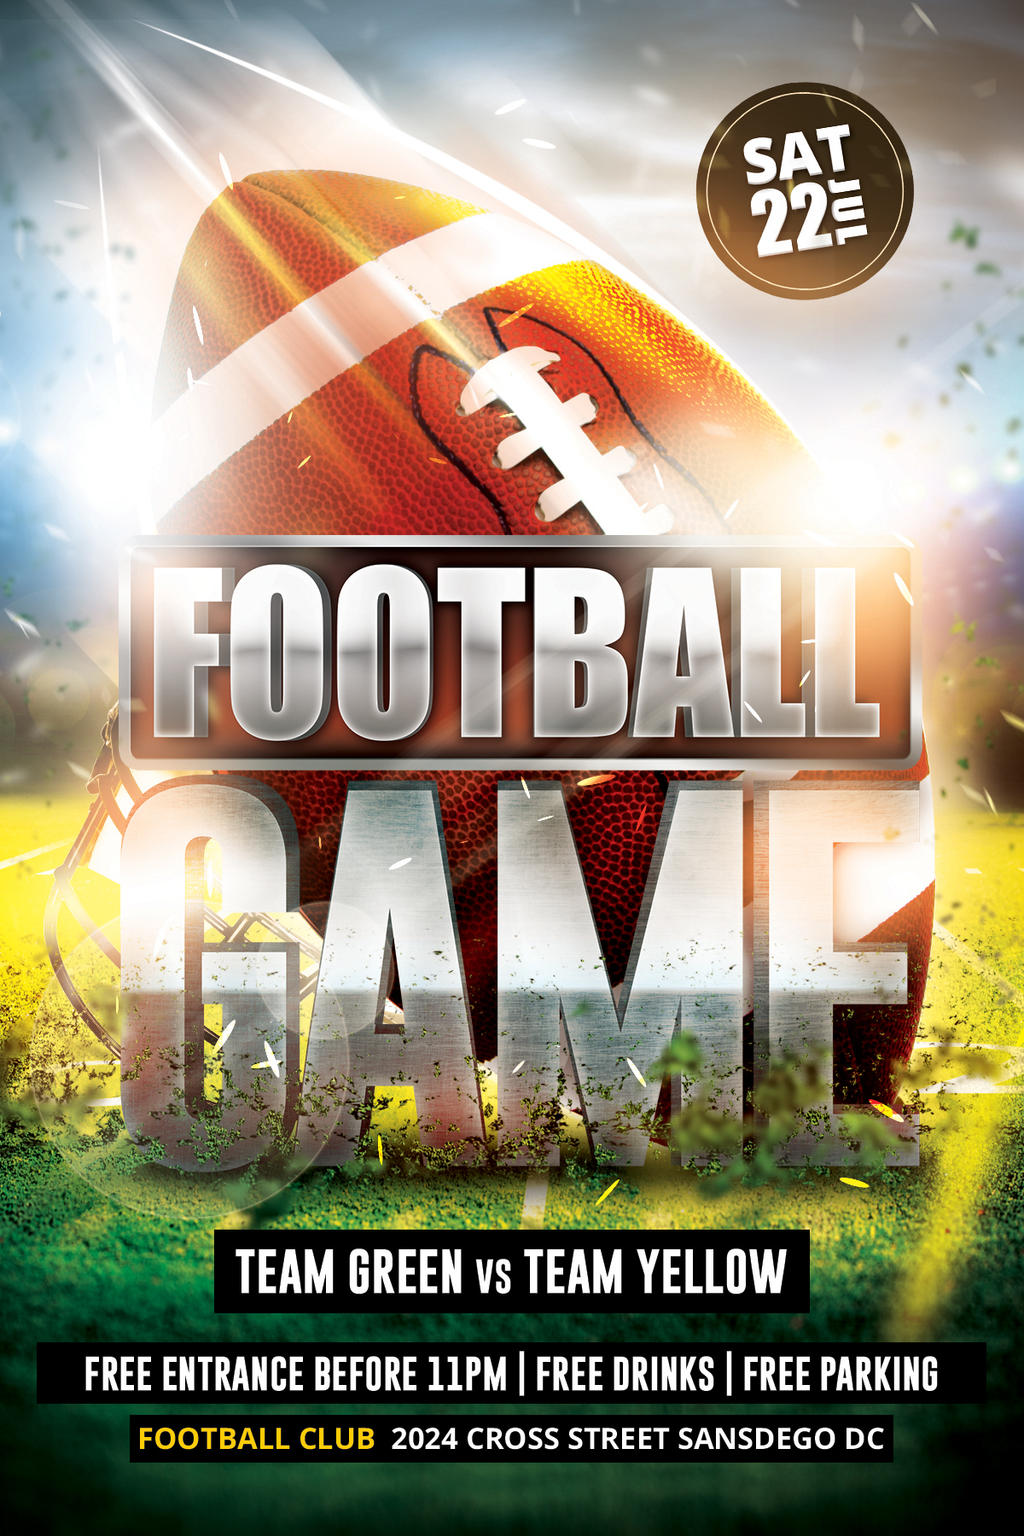 FootBall Game Flyer by Dilanr on DeviantArt